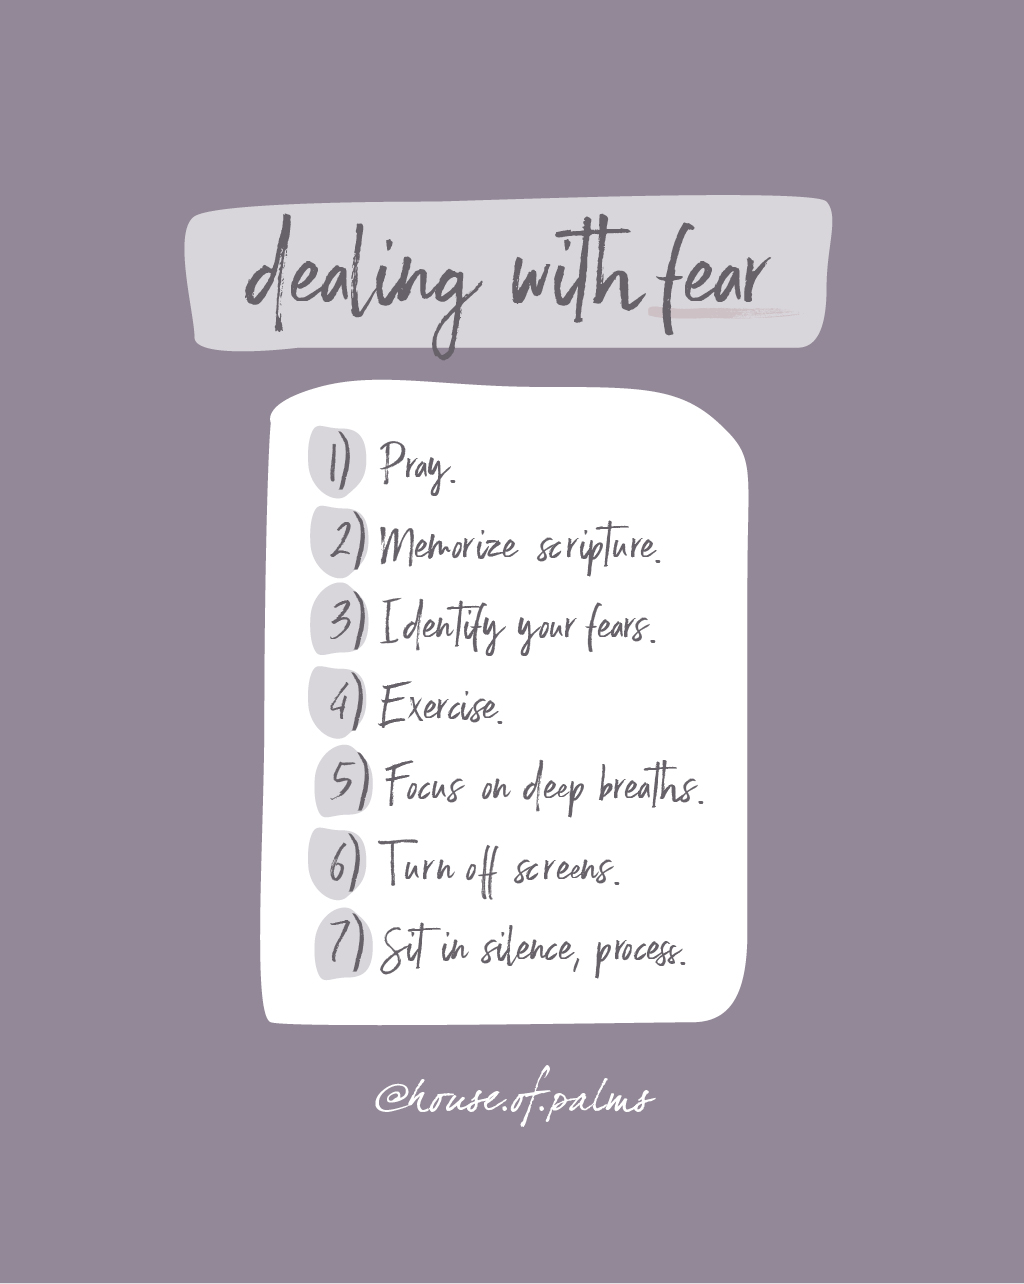 Overcoming fear - practical things to do when you have anxiety